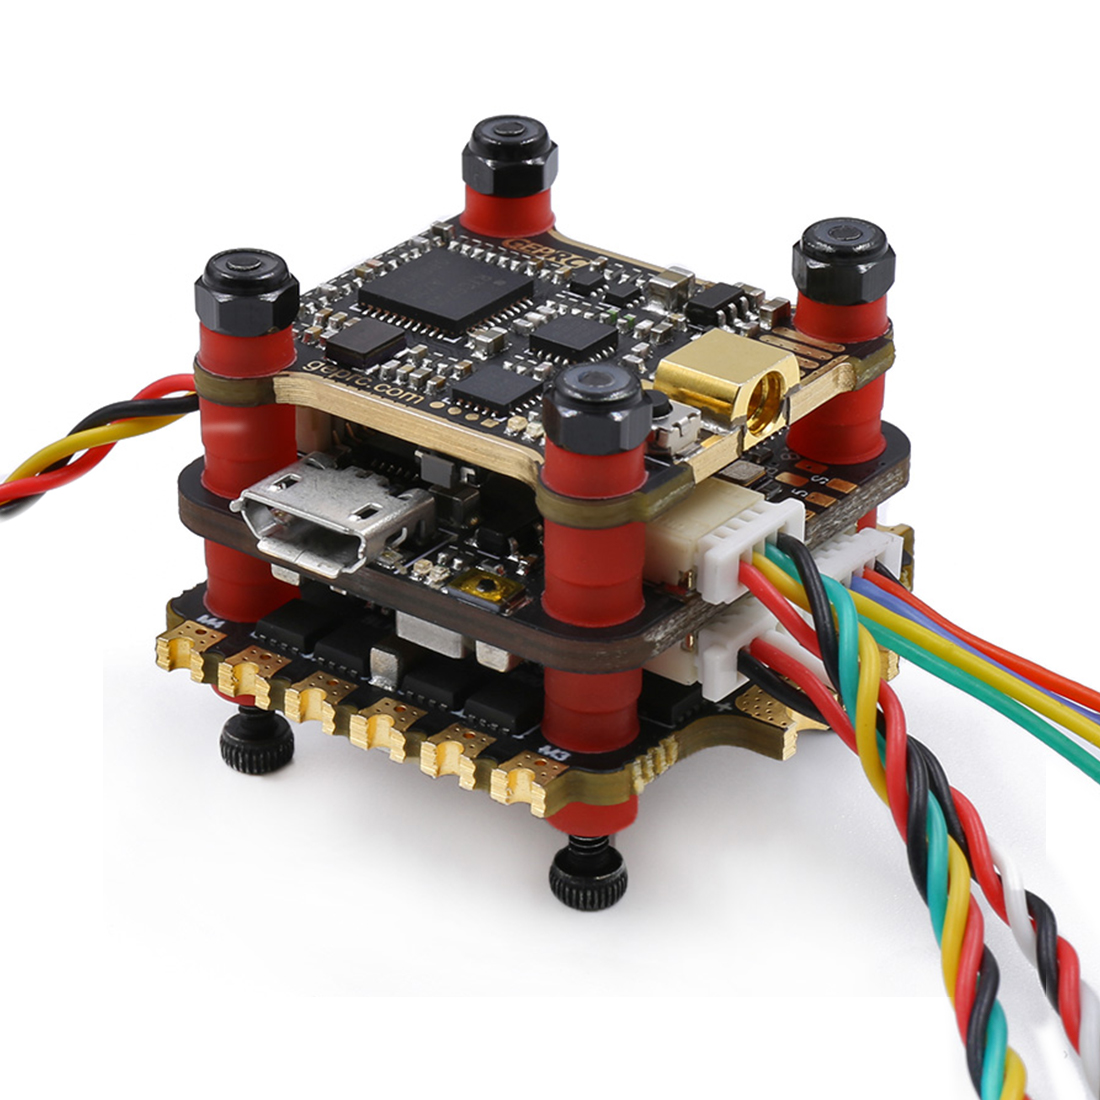 GEPRC Stable Pro F7 DUAL BL 35A Flytower /Stable V2 F4 Flight Controller+ 35A /30A ESC+5.8G 500mW VTX for FPV Racing Drone-in Parts & Accessories from Toys & Hobbies    1